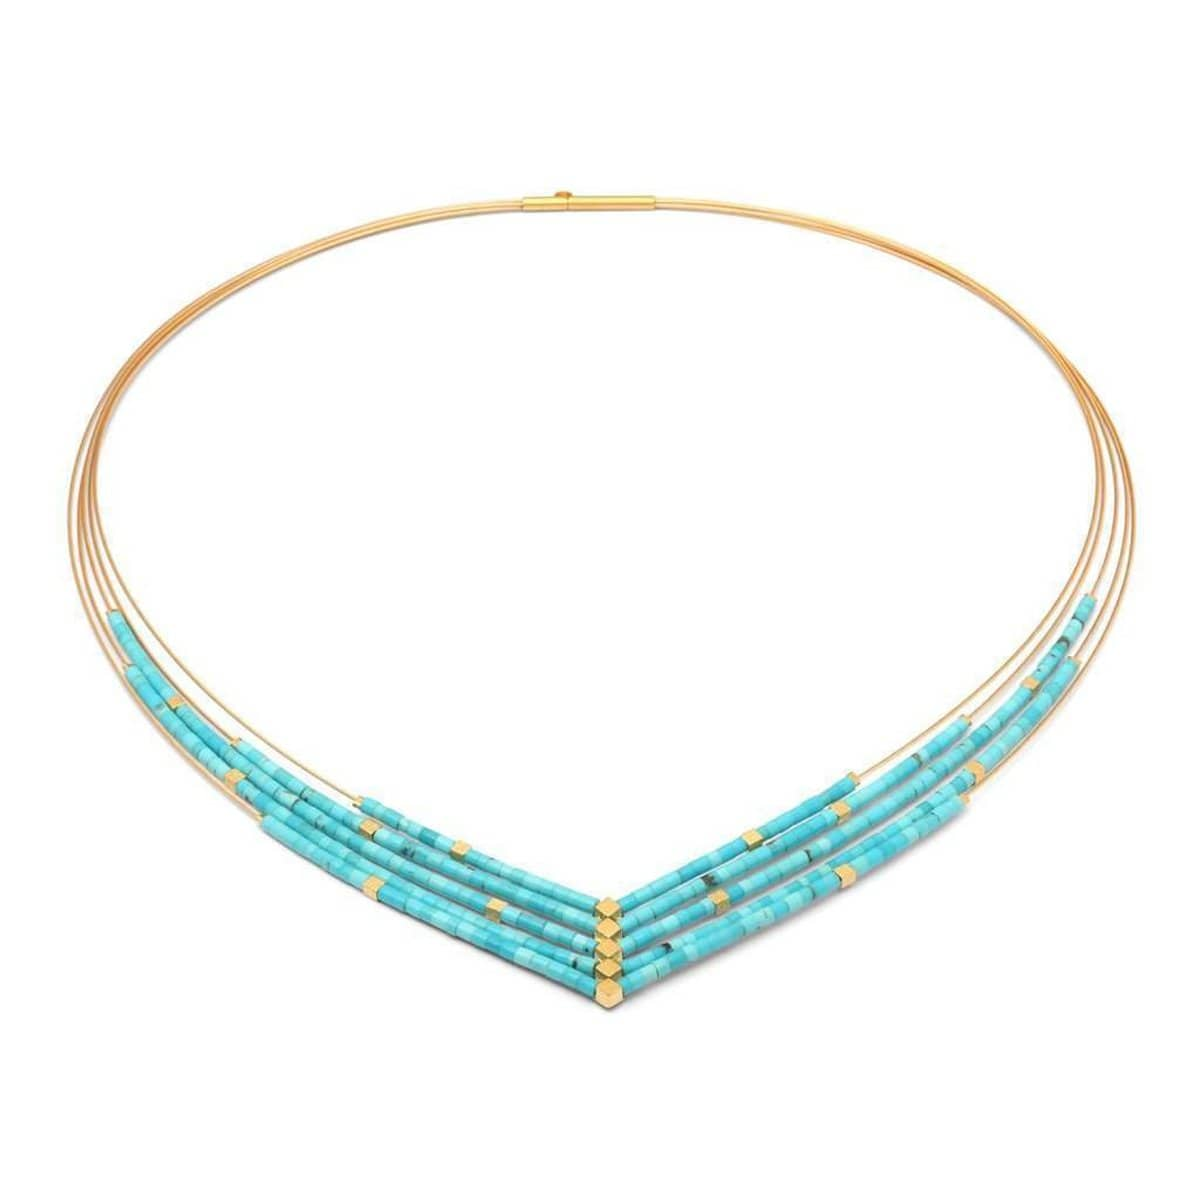 Valena Turquoise Necklace - 86021256-Bernd Wolf-Renee Taylor Gallery